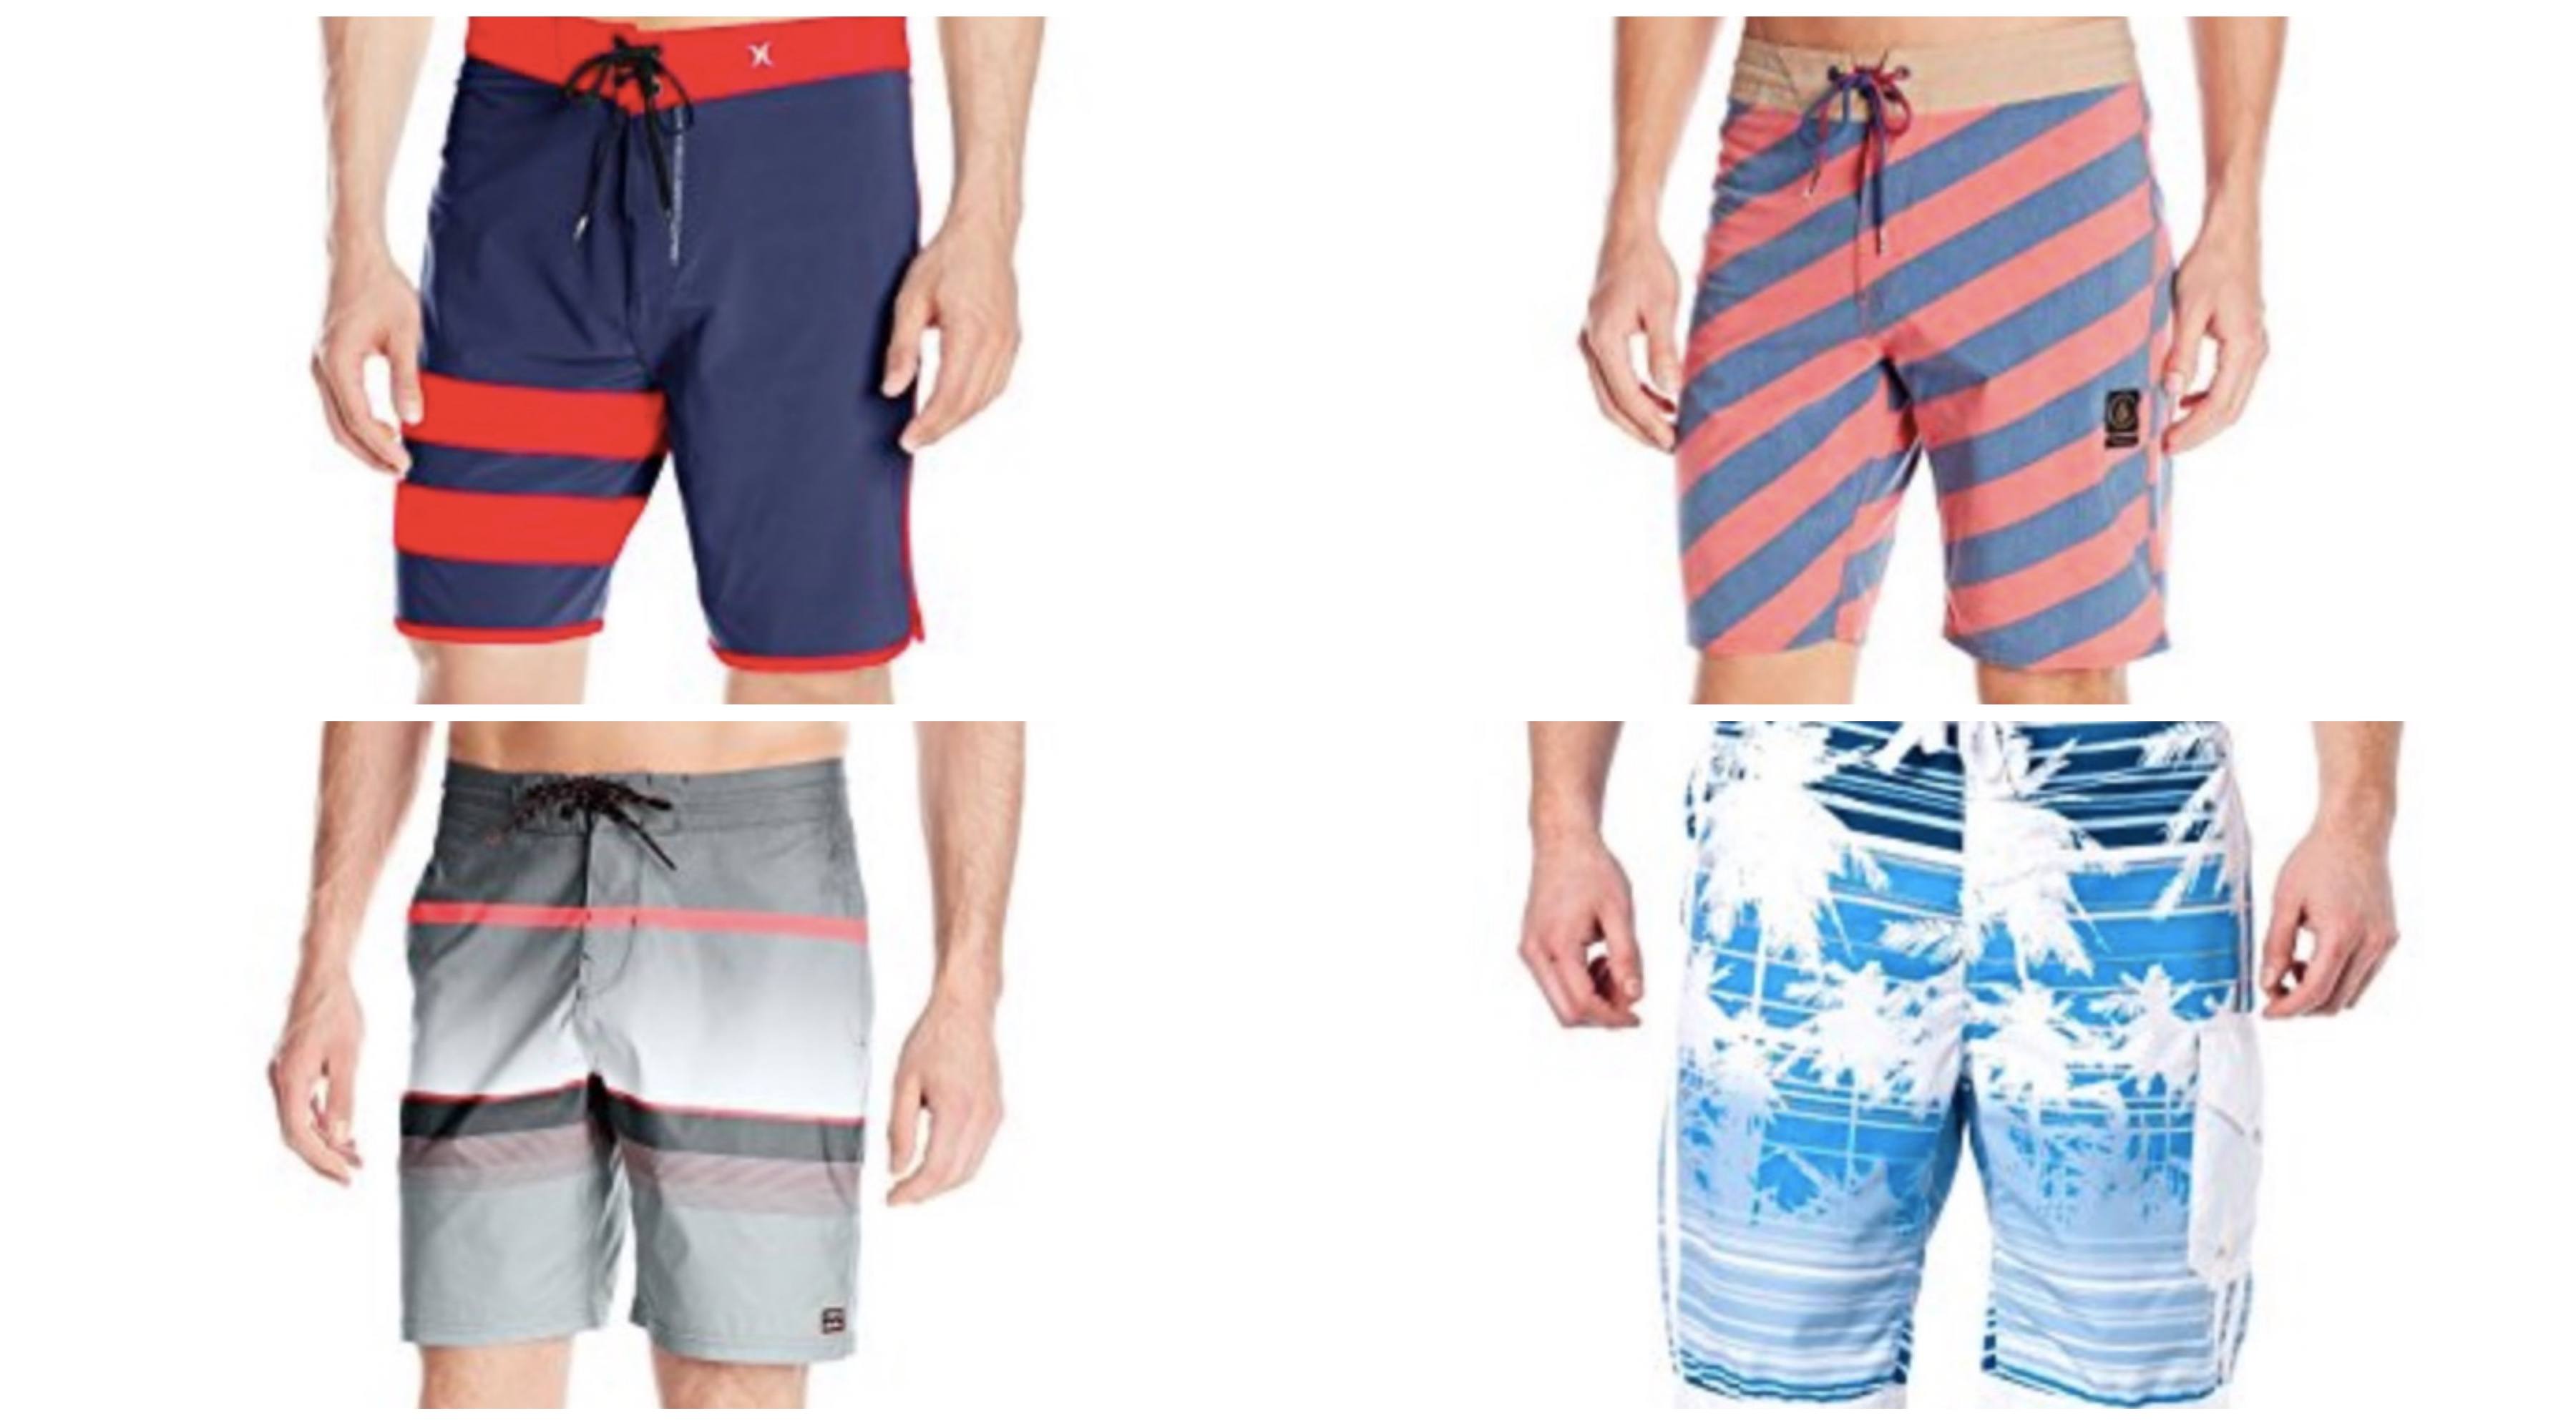 10 Best Board Shorts For Guys In 2018 u2013 BroBible